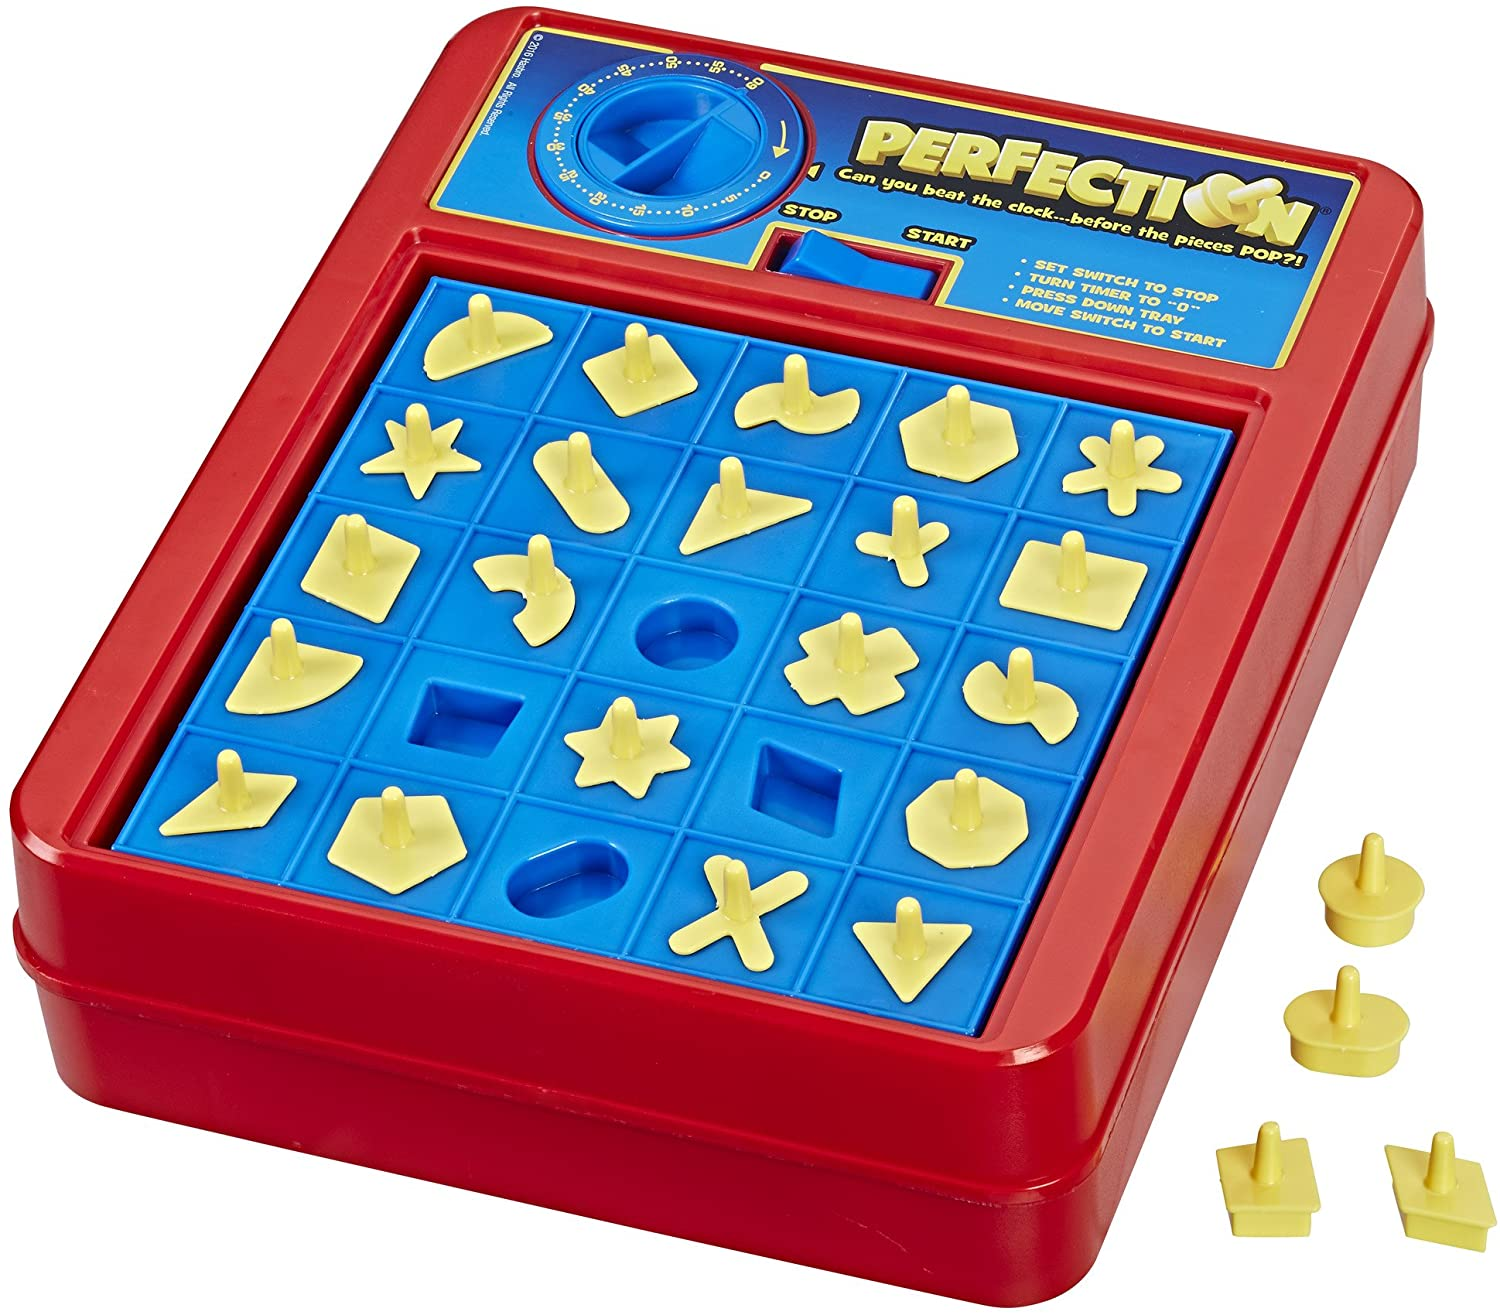 Hasbro C0432 Perfection Game